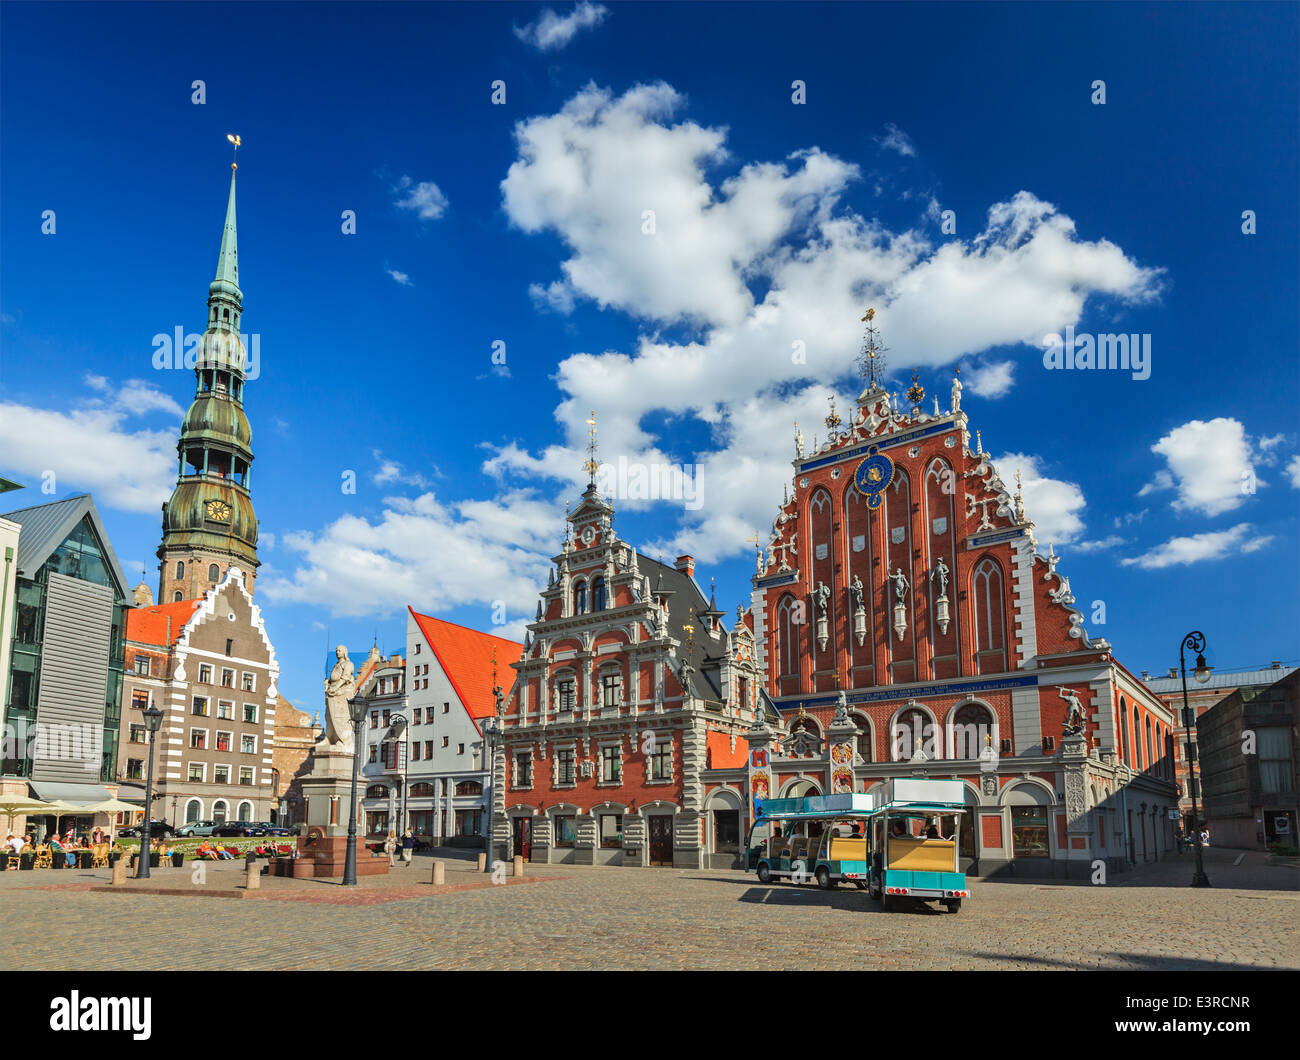 Riga Town Hall Square, House of the Blackheads and St. Peter's Church, Riga, Latvia - Stock Image